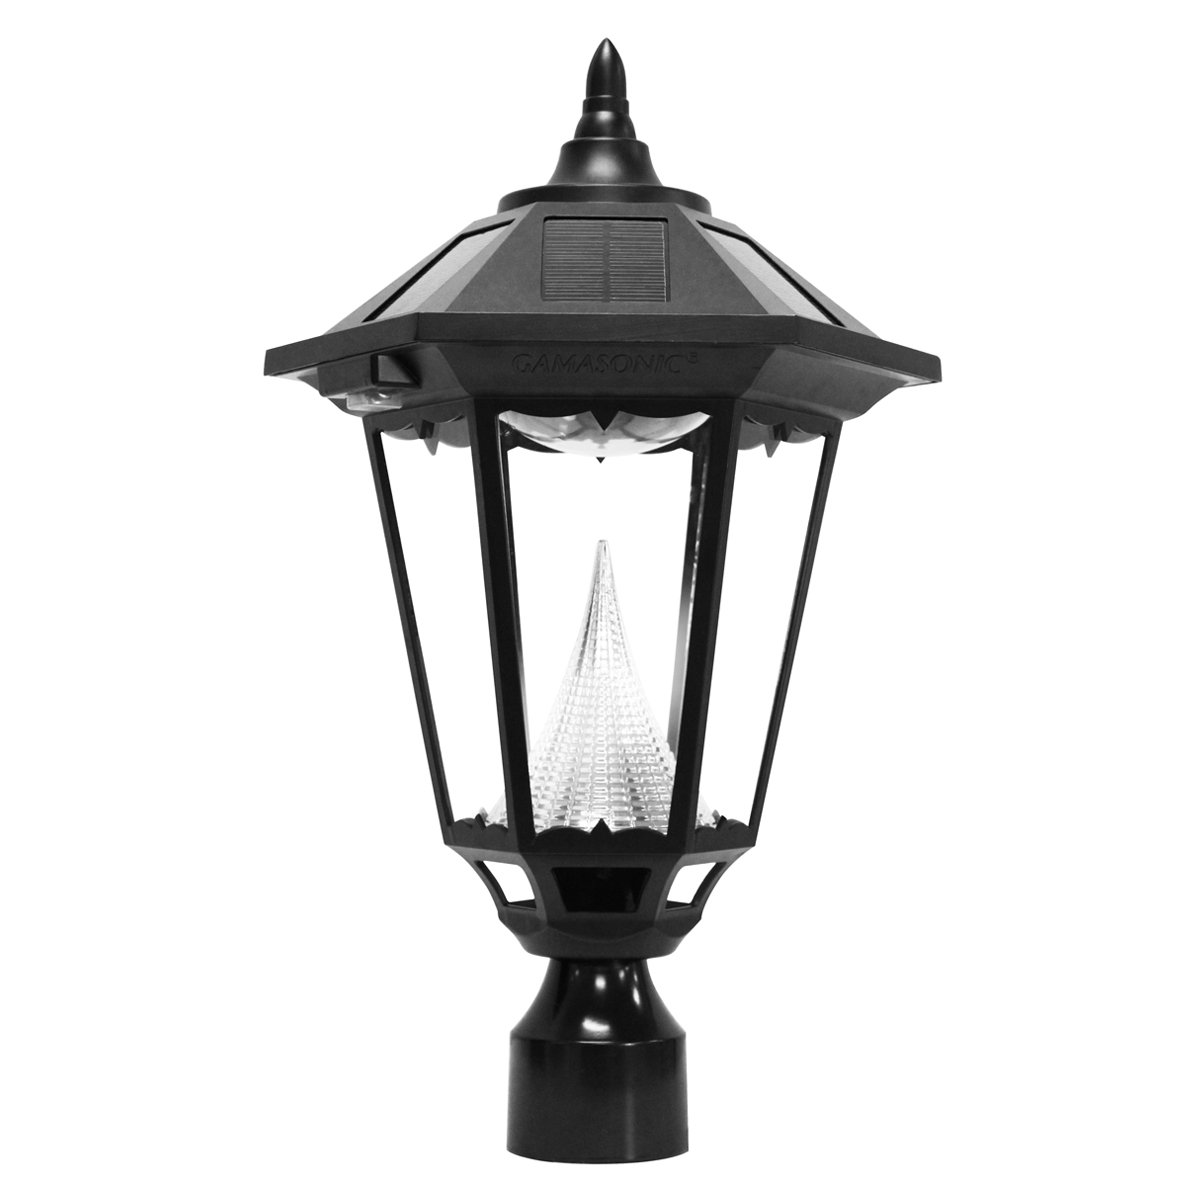 Gama Sonic Windsor Solar Outdoor LED Light Fixture, 3-Inch Fitter for Post Mount, Black Finish #GS-99F by Gama Sonic